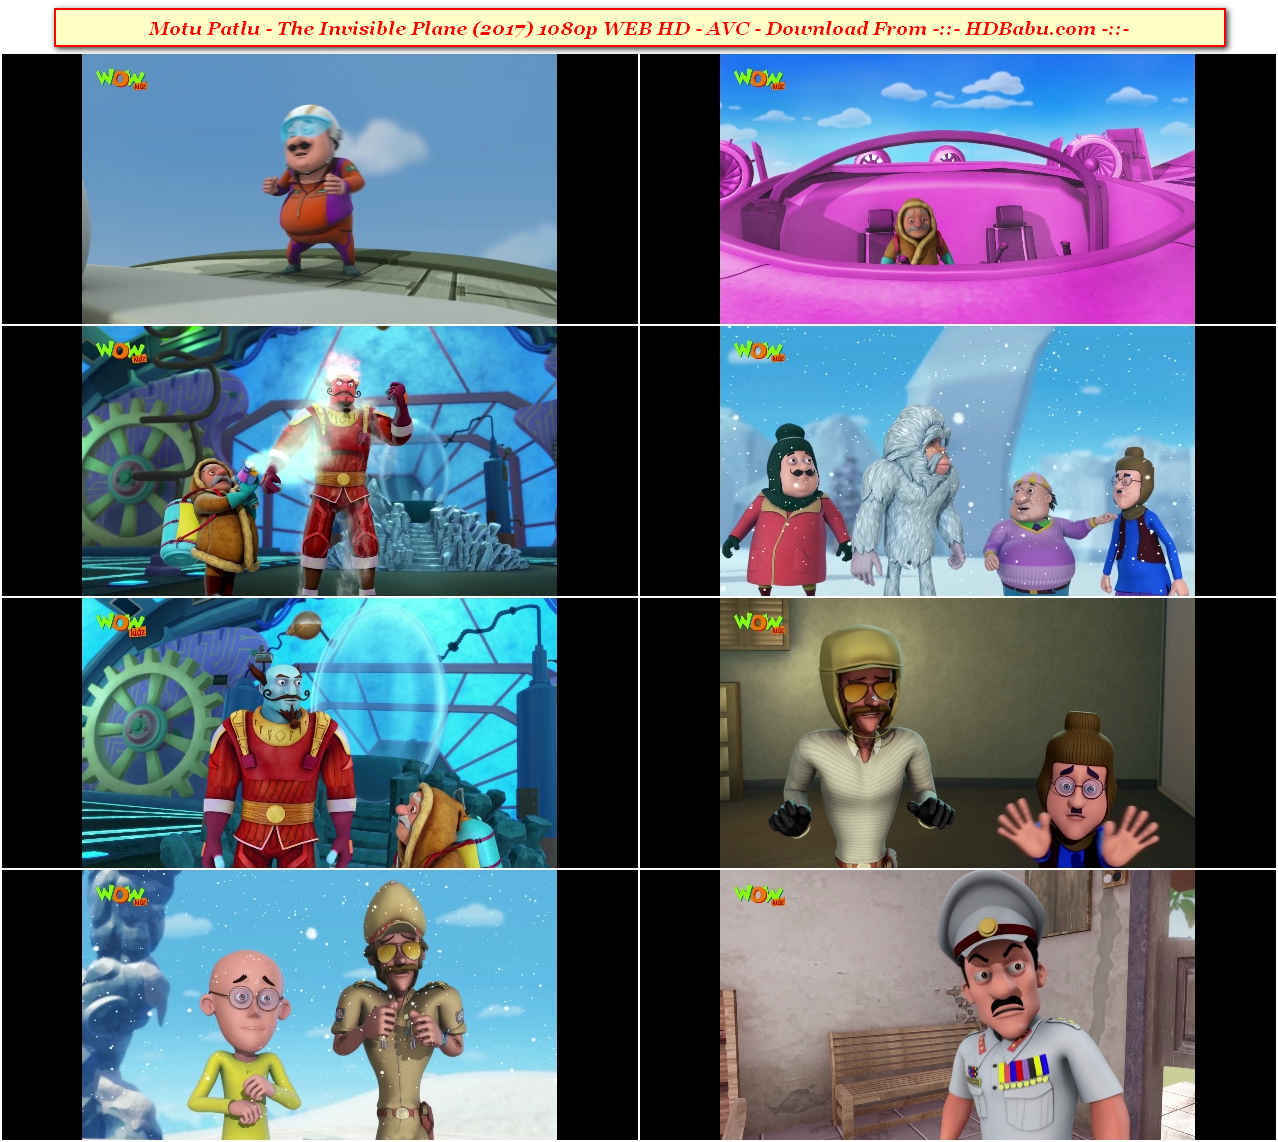 Motu Patlu - The Invisible Plane Full Movie Download